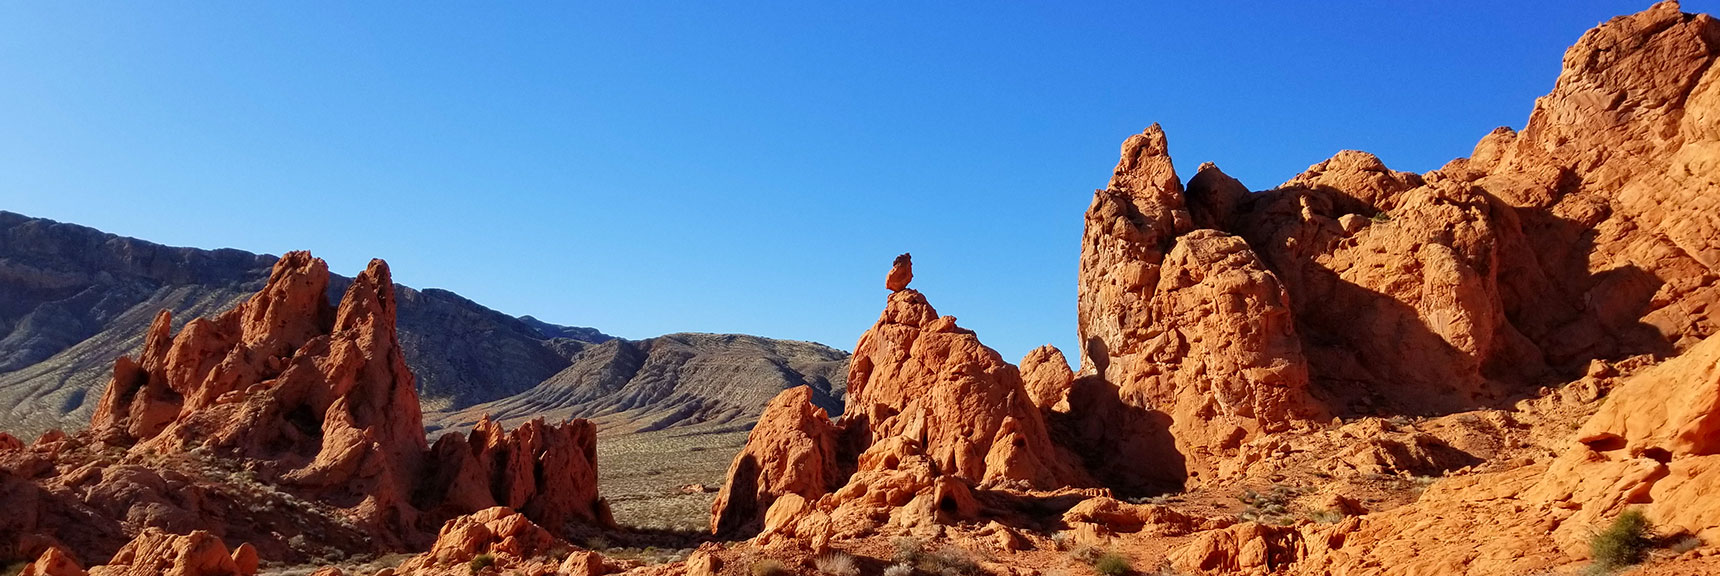 Pinnacles Loop Trail in Valley of Fire State Park, Nevada